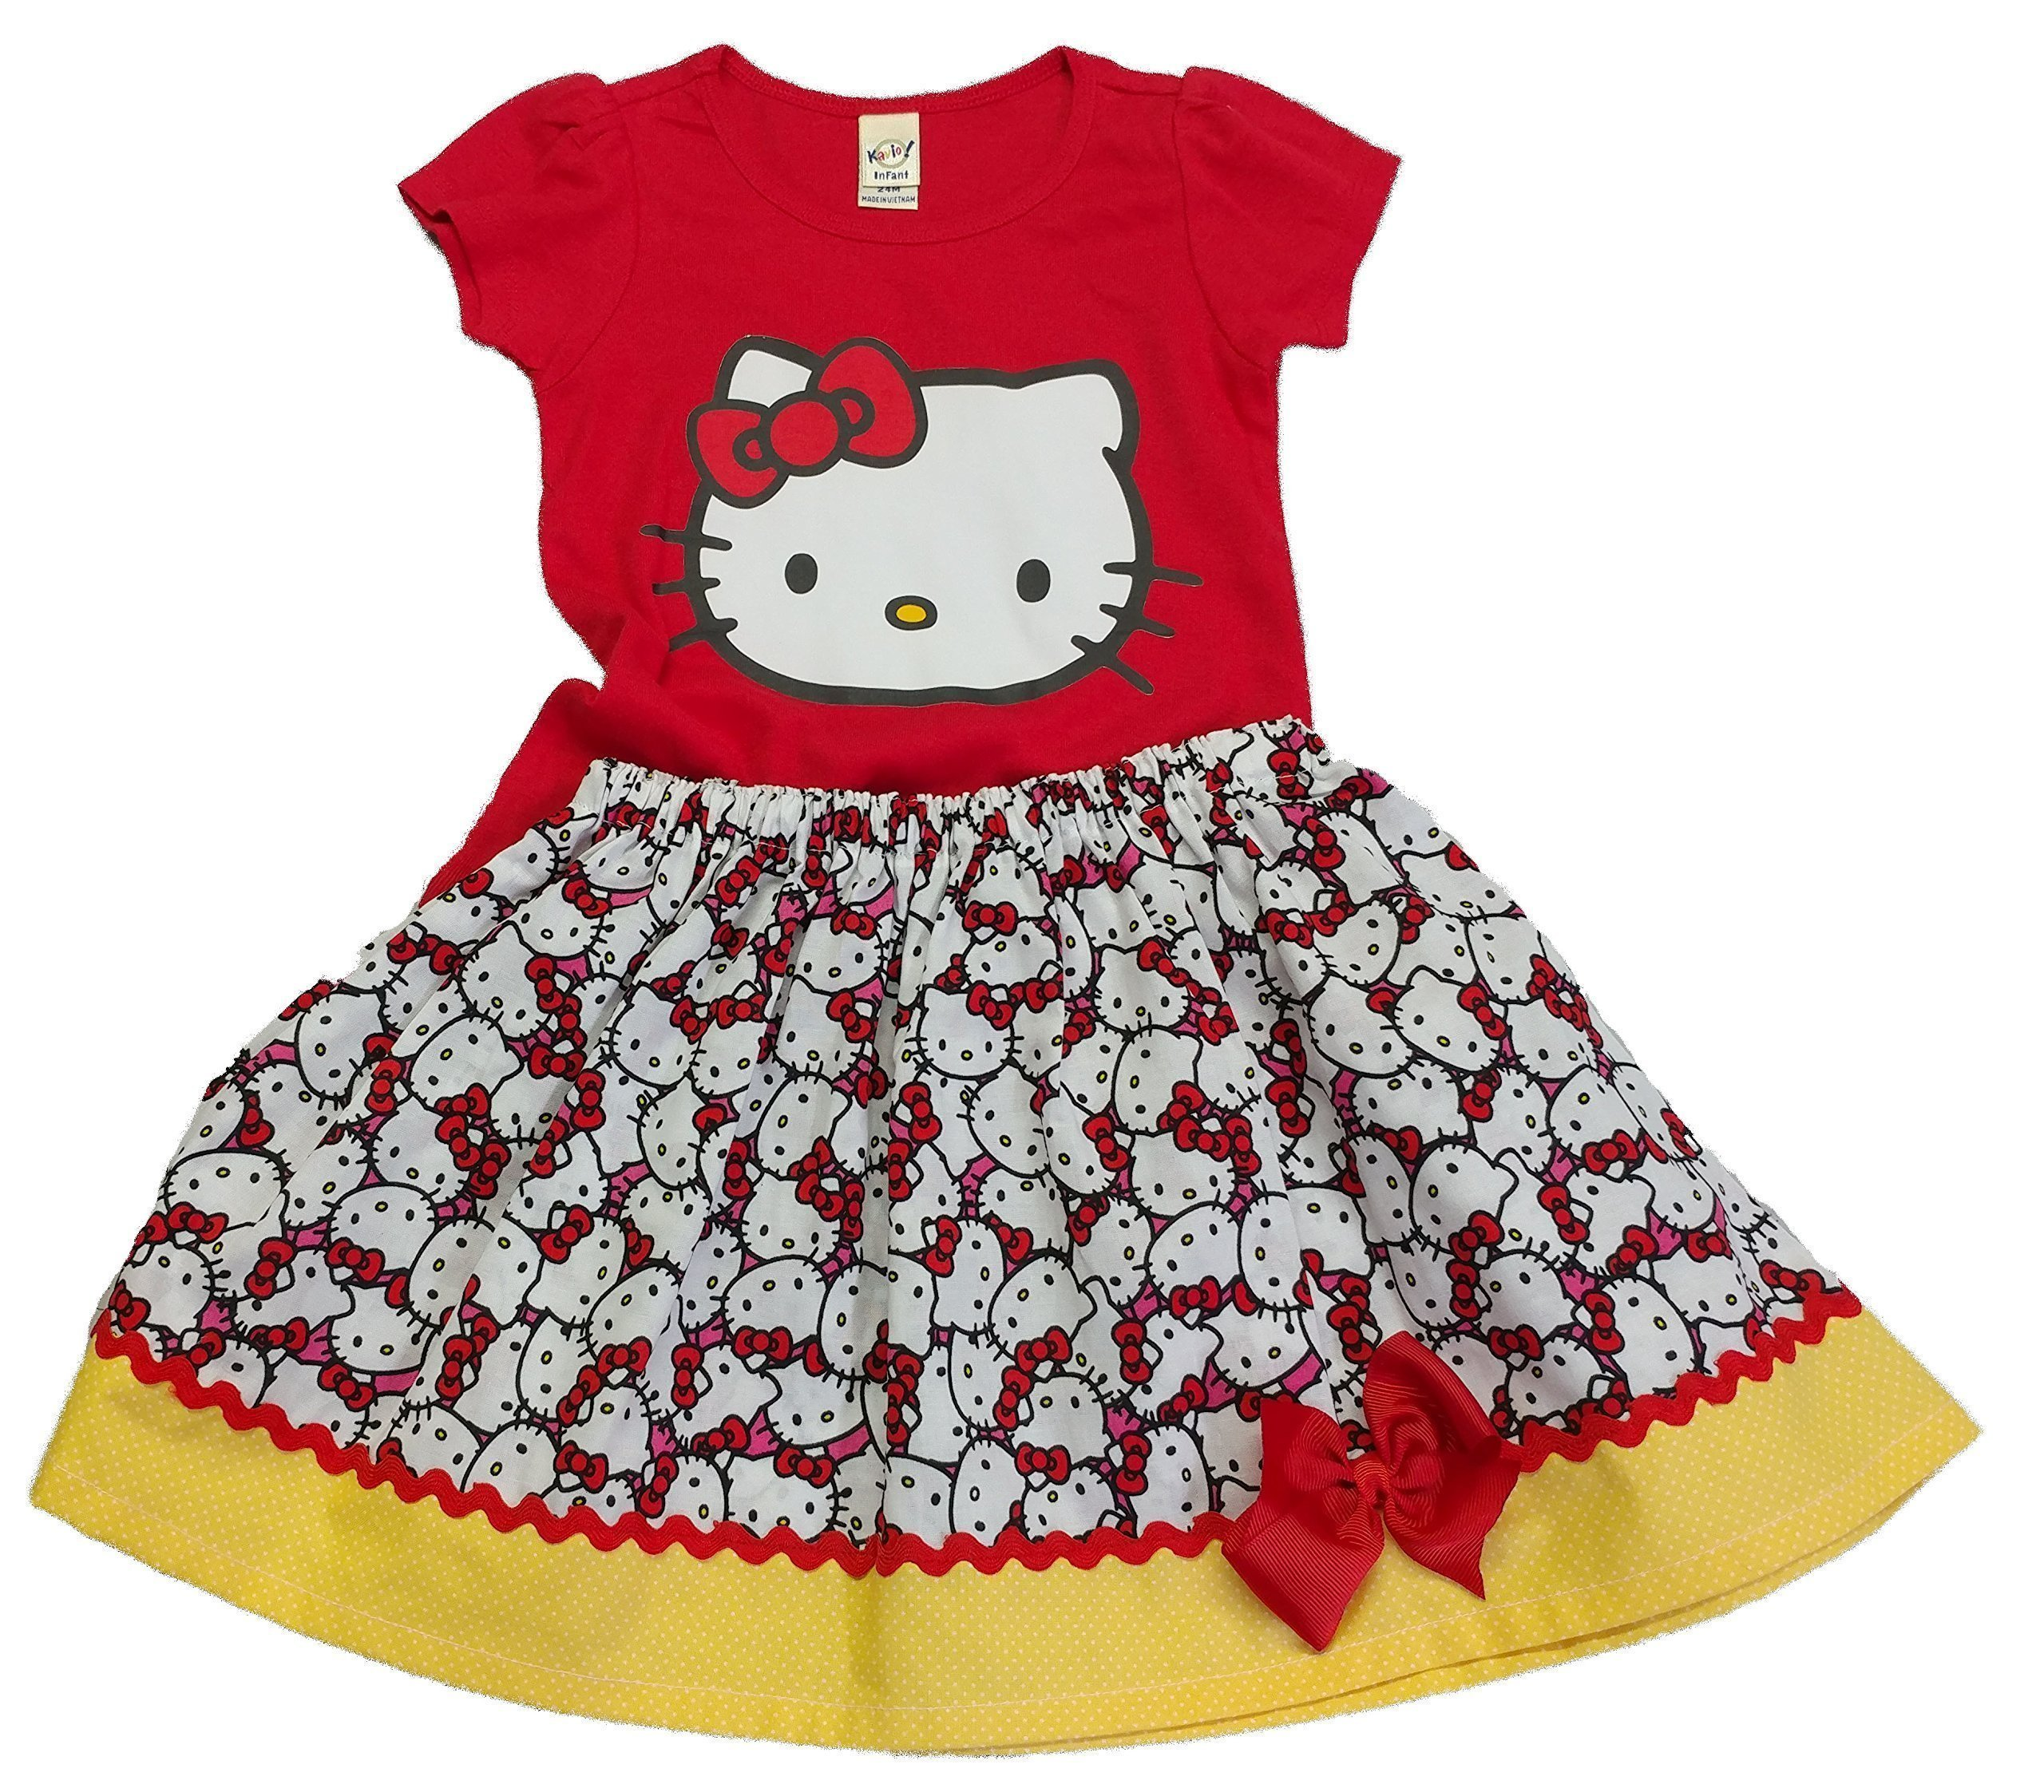 Girl Hello Kitty outfit Girl outfit Girl Hello Kitty dress Girl skirt shirt Hello Kitty skirt shirt outfit